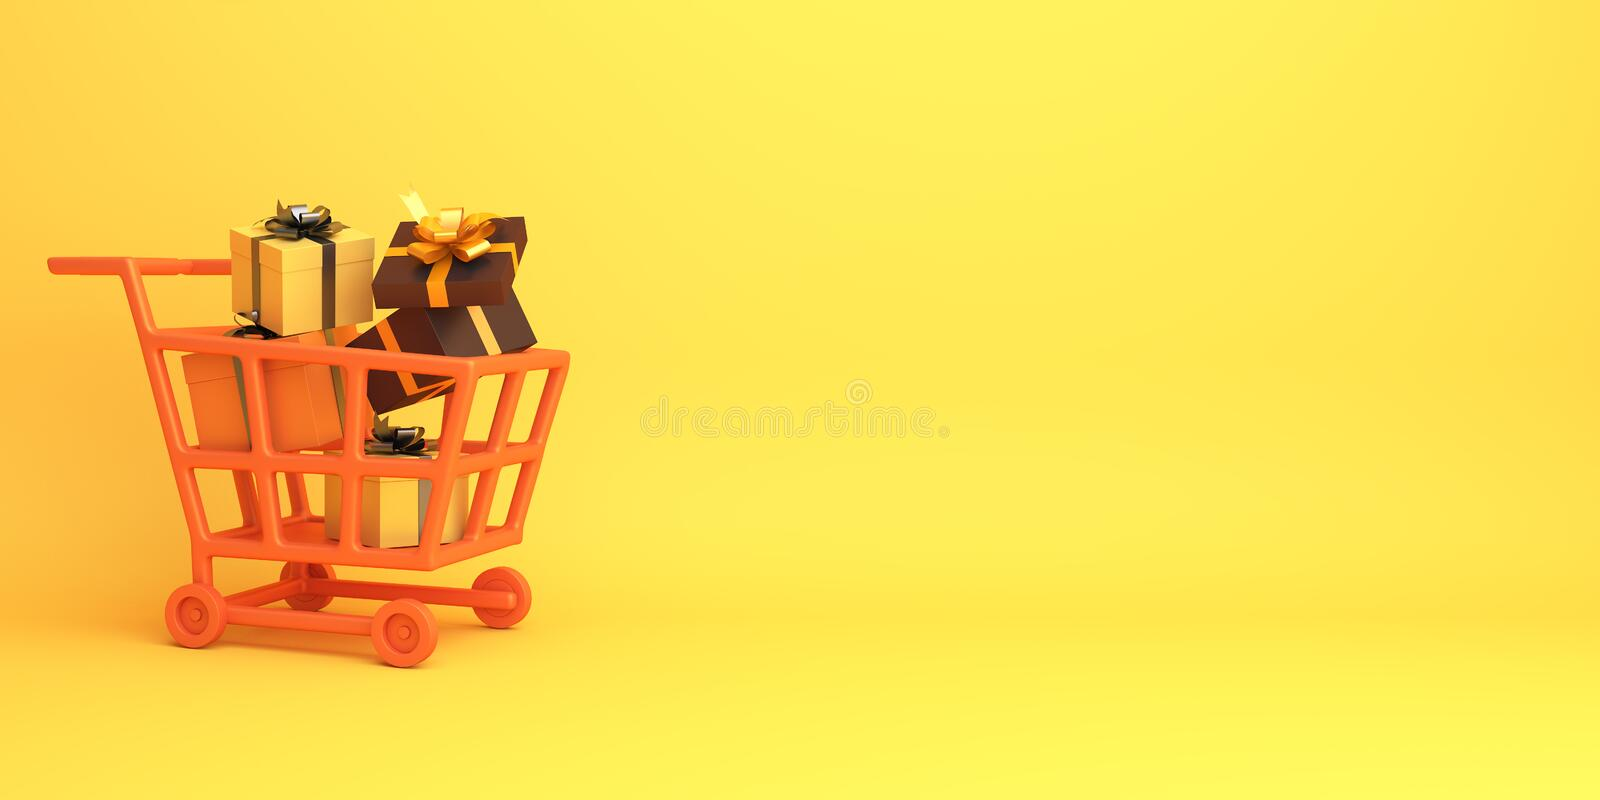 Happy Halloween holiday celebration design creative concept, shopping trolley cart and gift box on orange background. 3D rendering illustration royalty free illustration